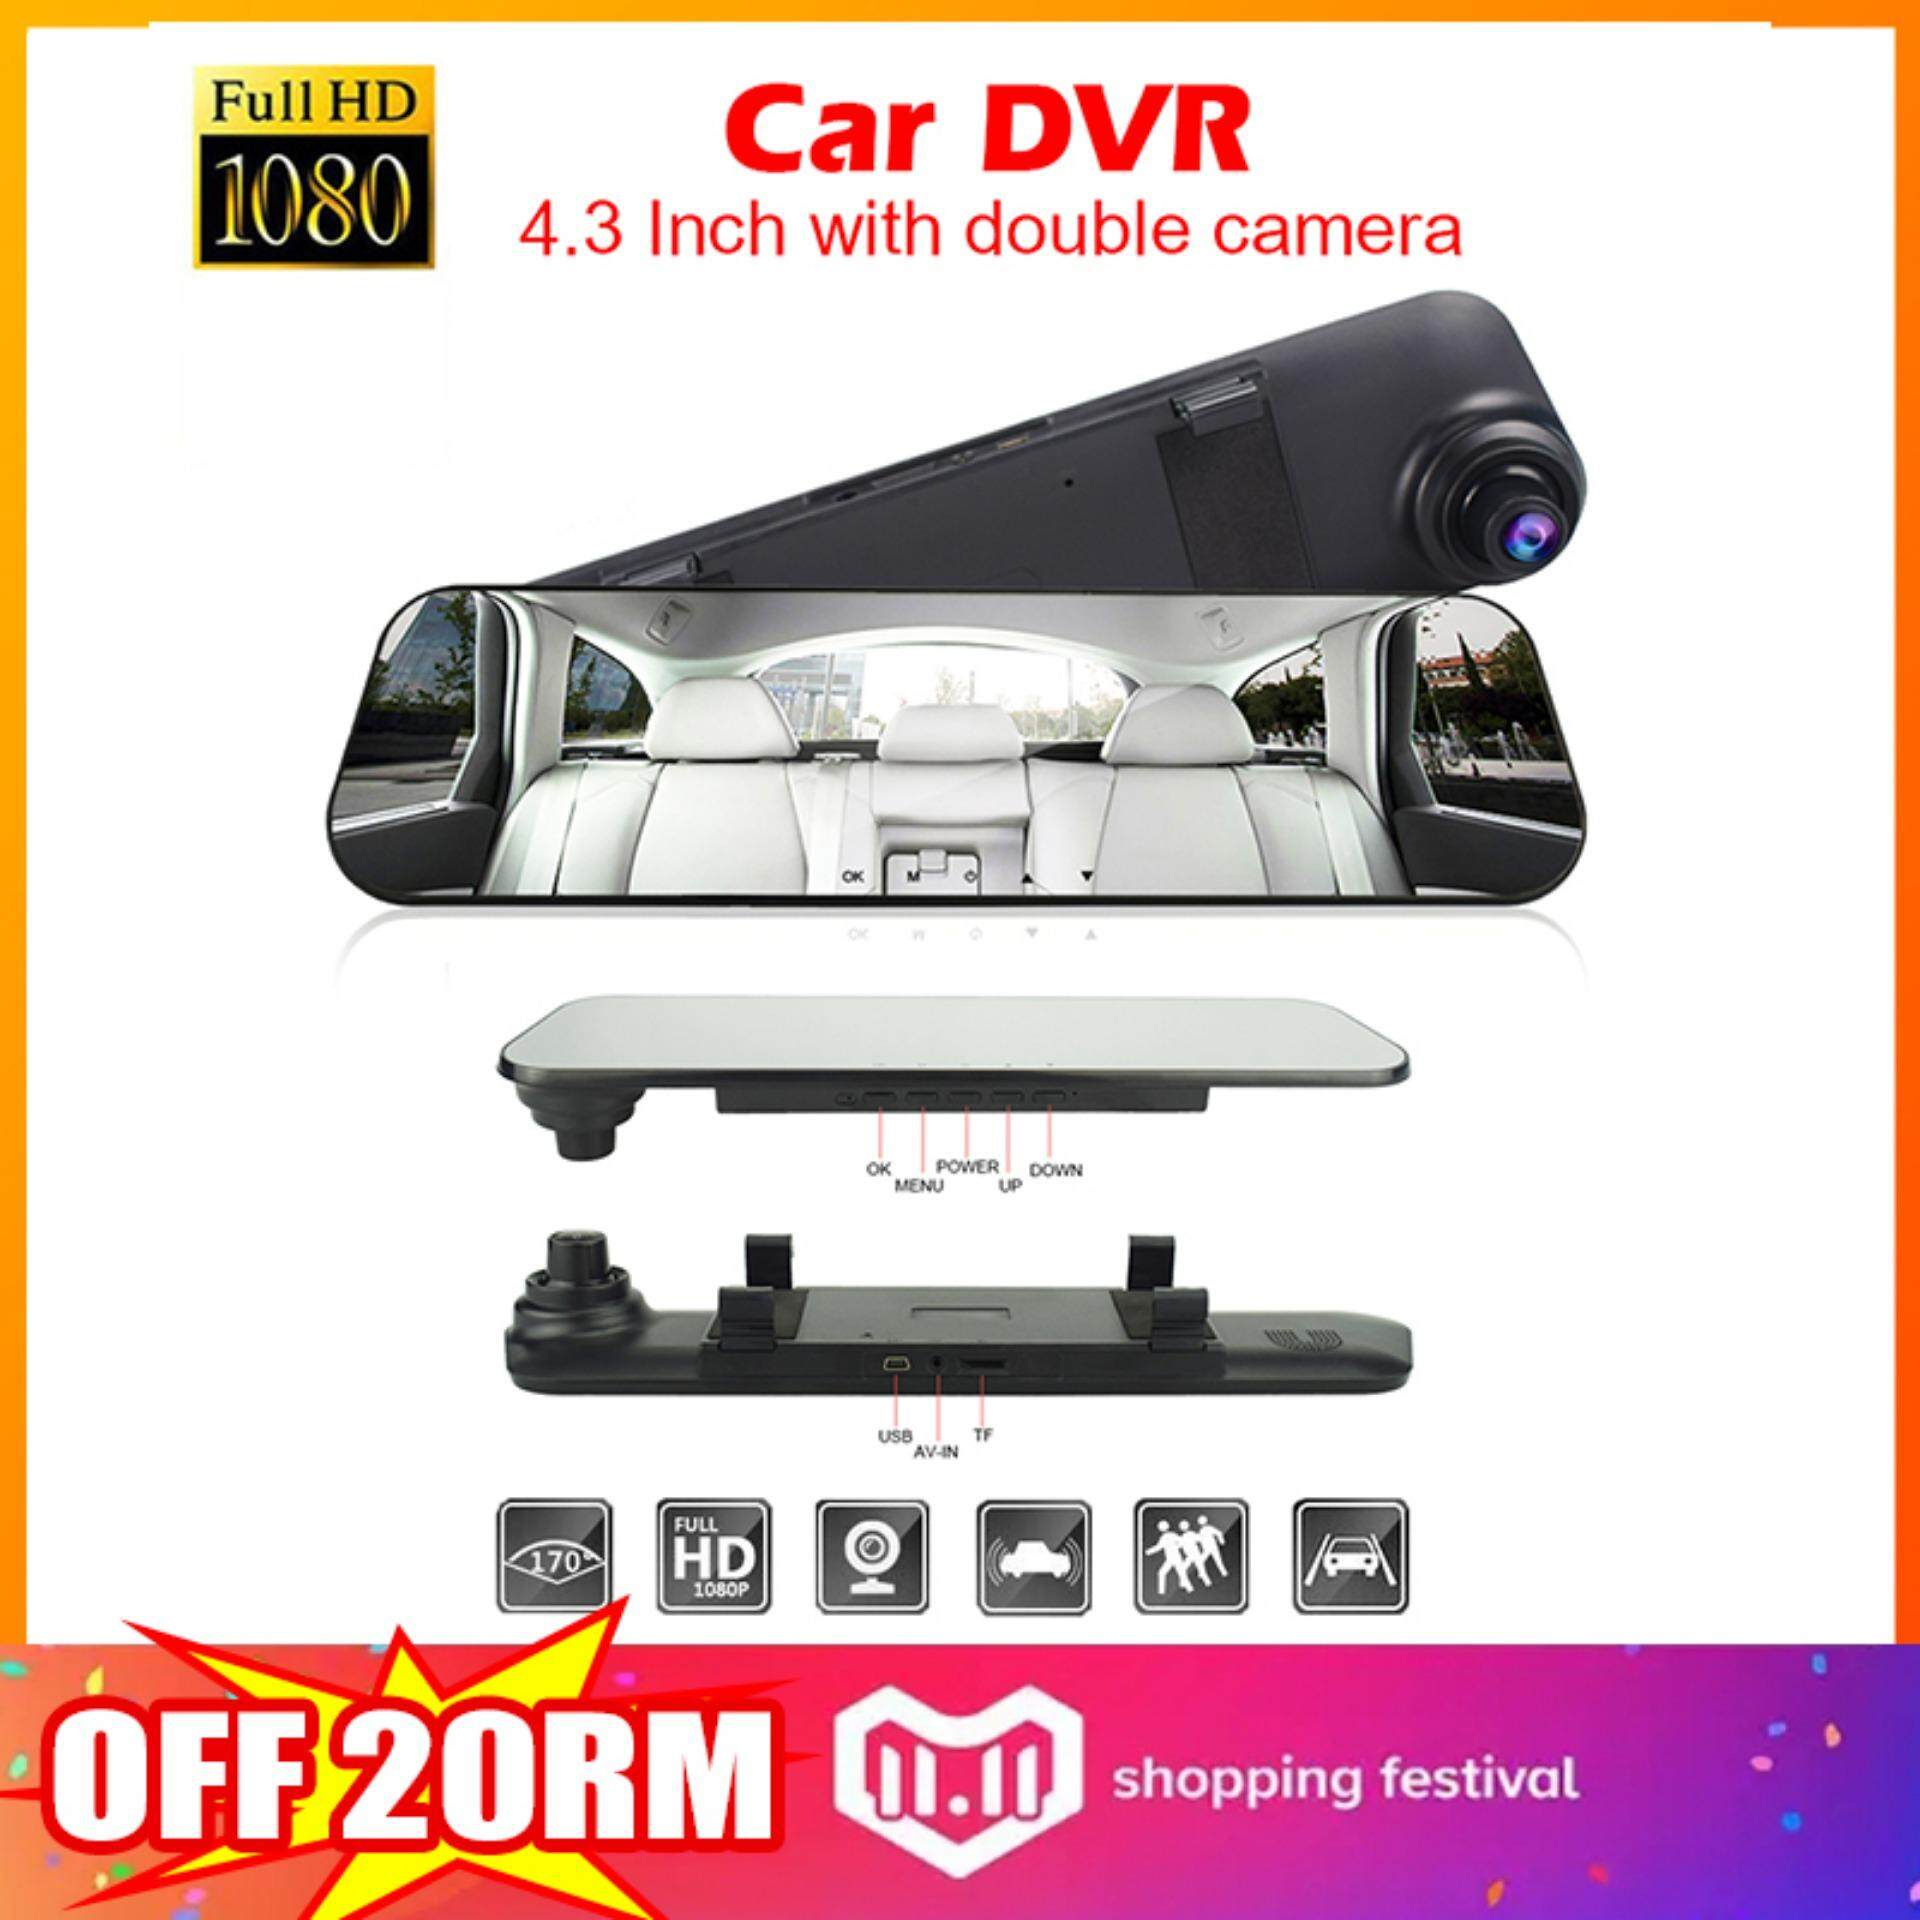 Car Cameras Buy At Best Price In Malaysia Lazada Xiaomi Xiaoyi Yi Dome Cctv 1080 1080p Full Hd International Mmc 16gb Camera Video Recorder Dual Lens For Vehicles Front Rearview Mirror